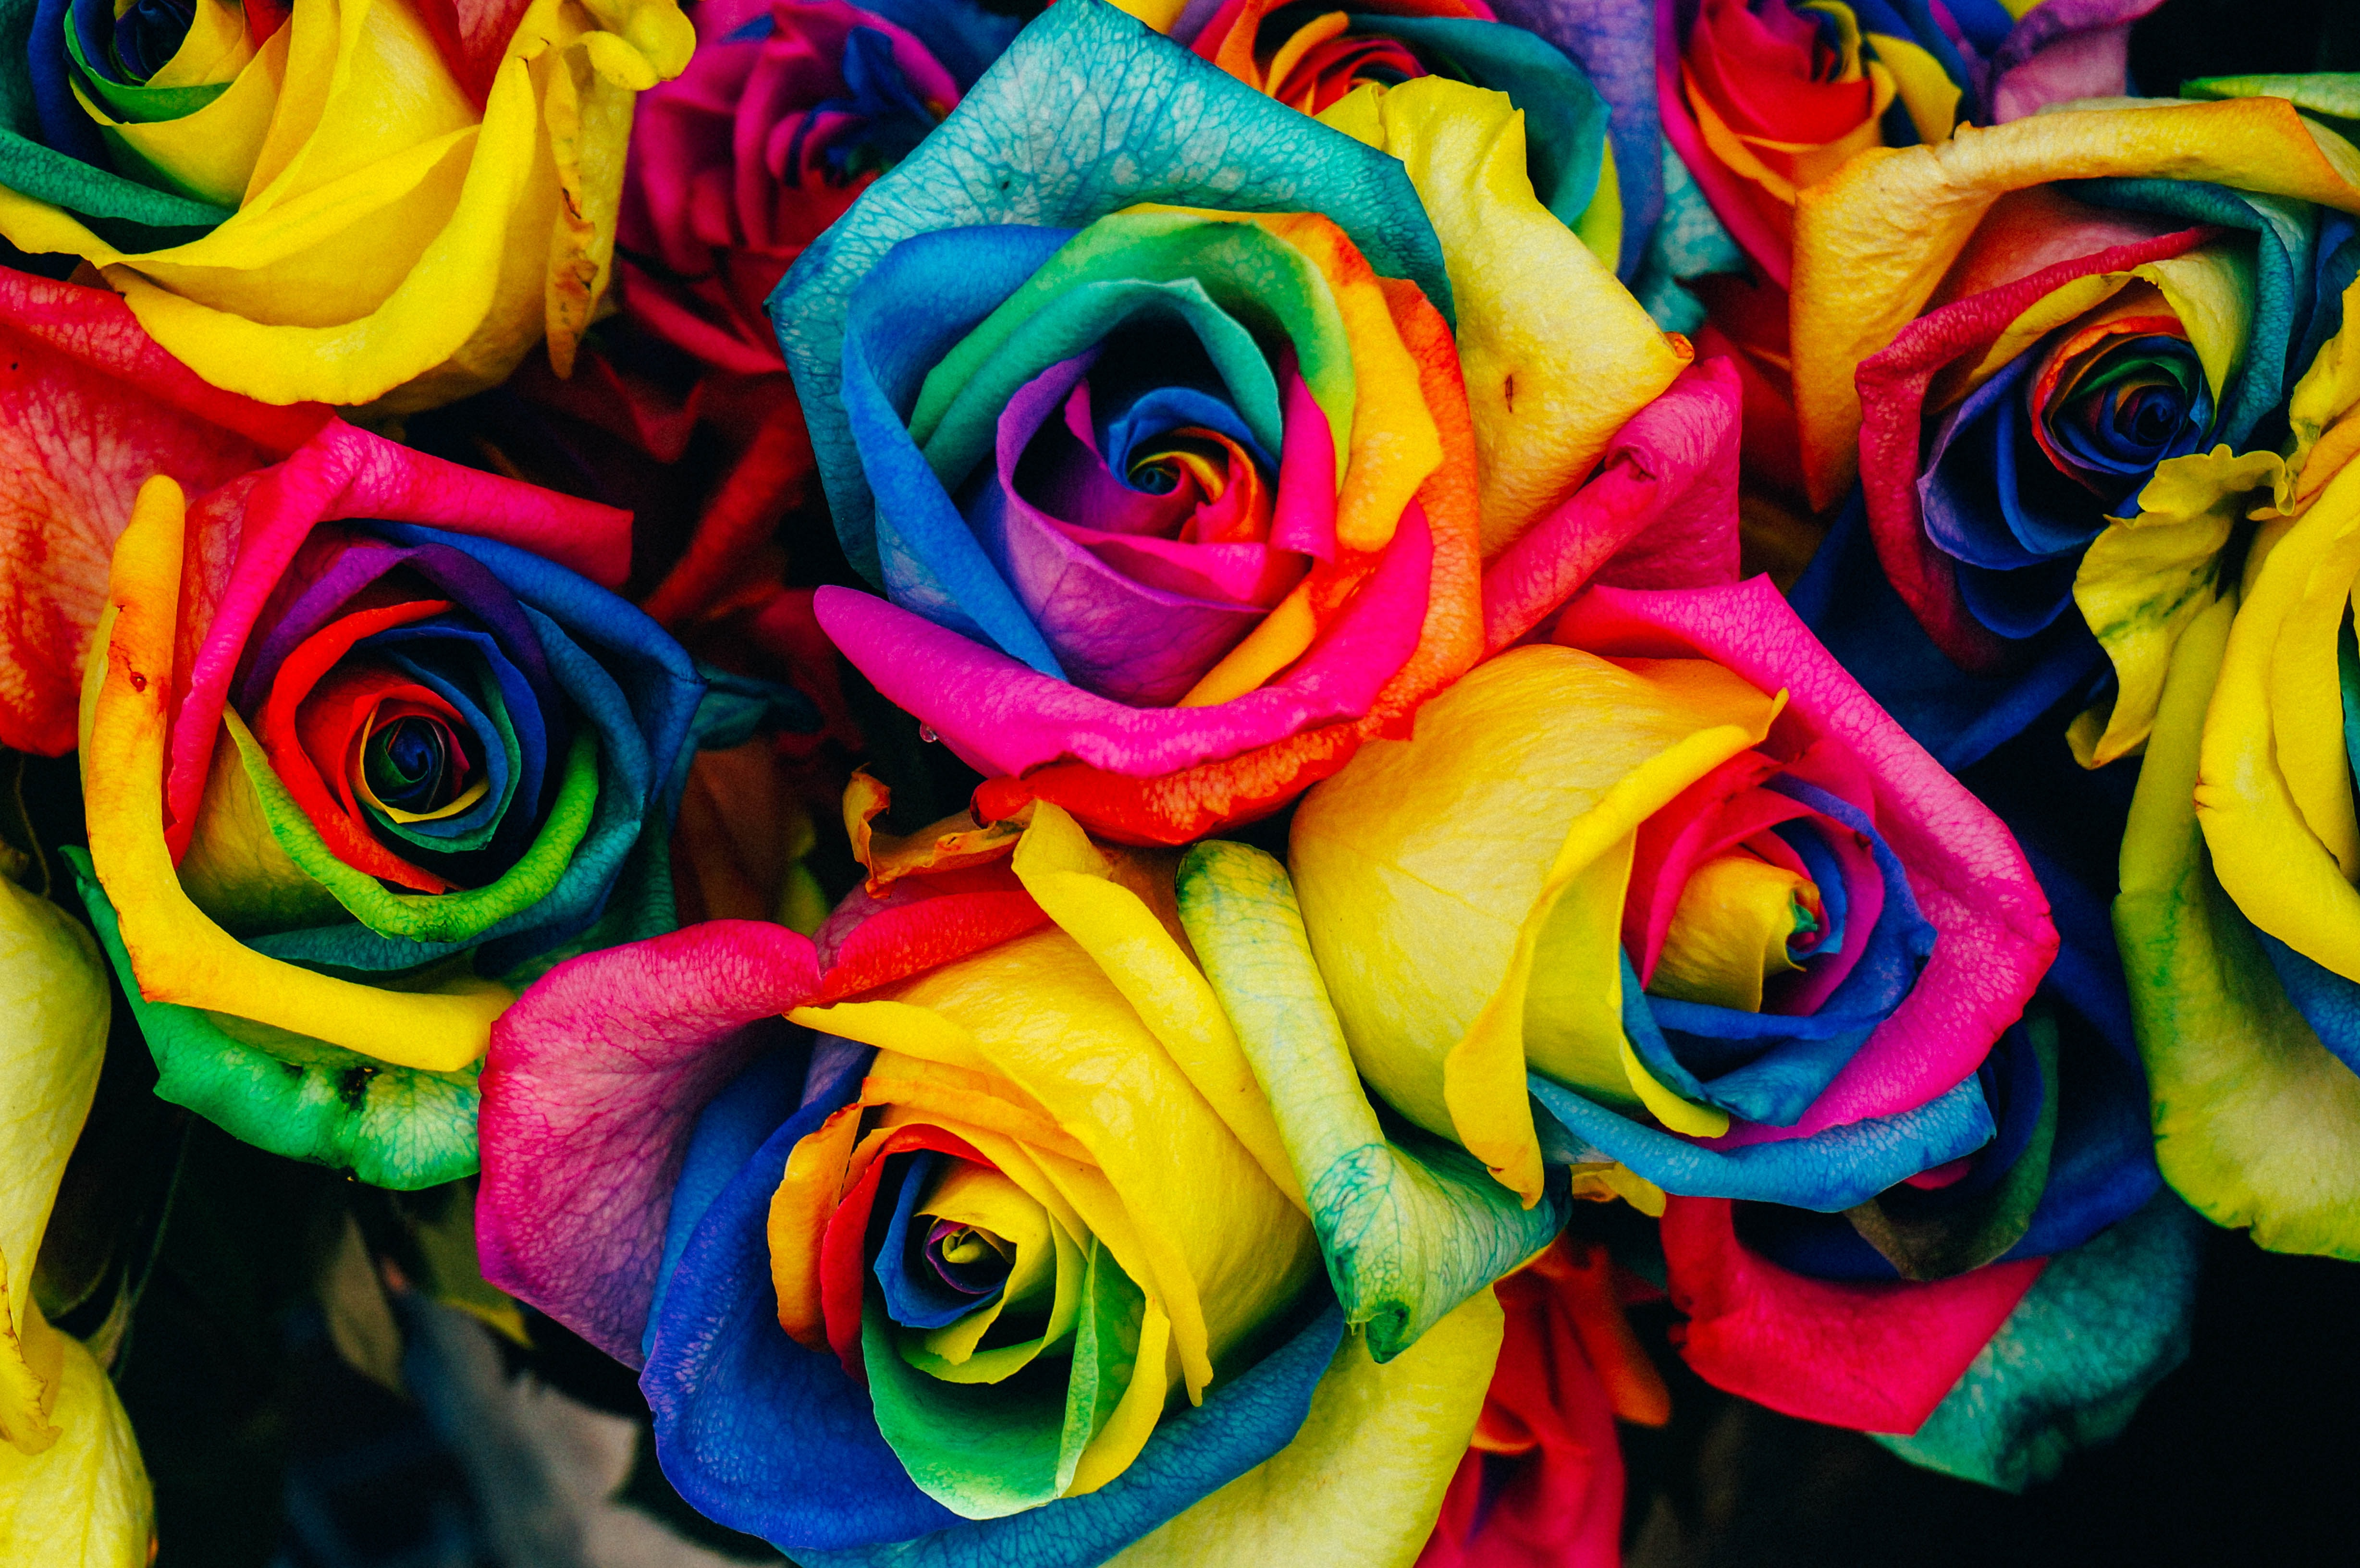 Roses dyed many colors and tightly packed together